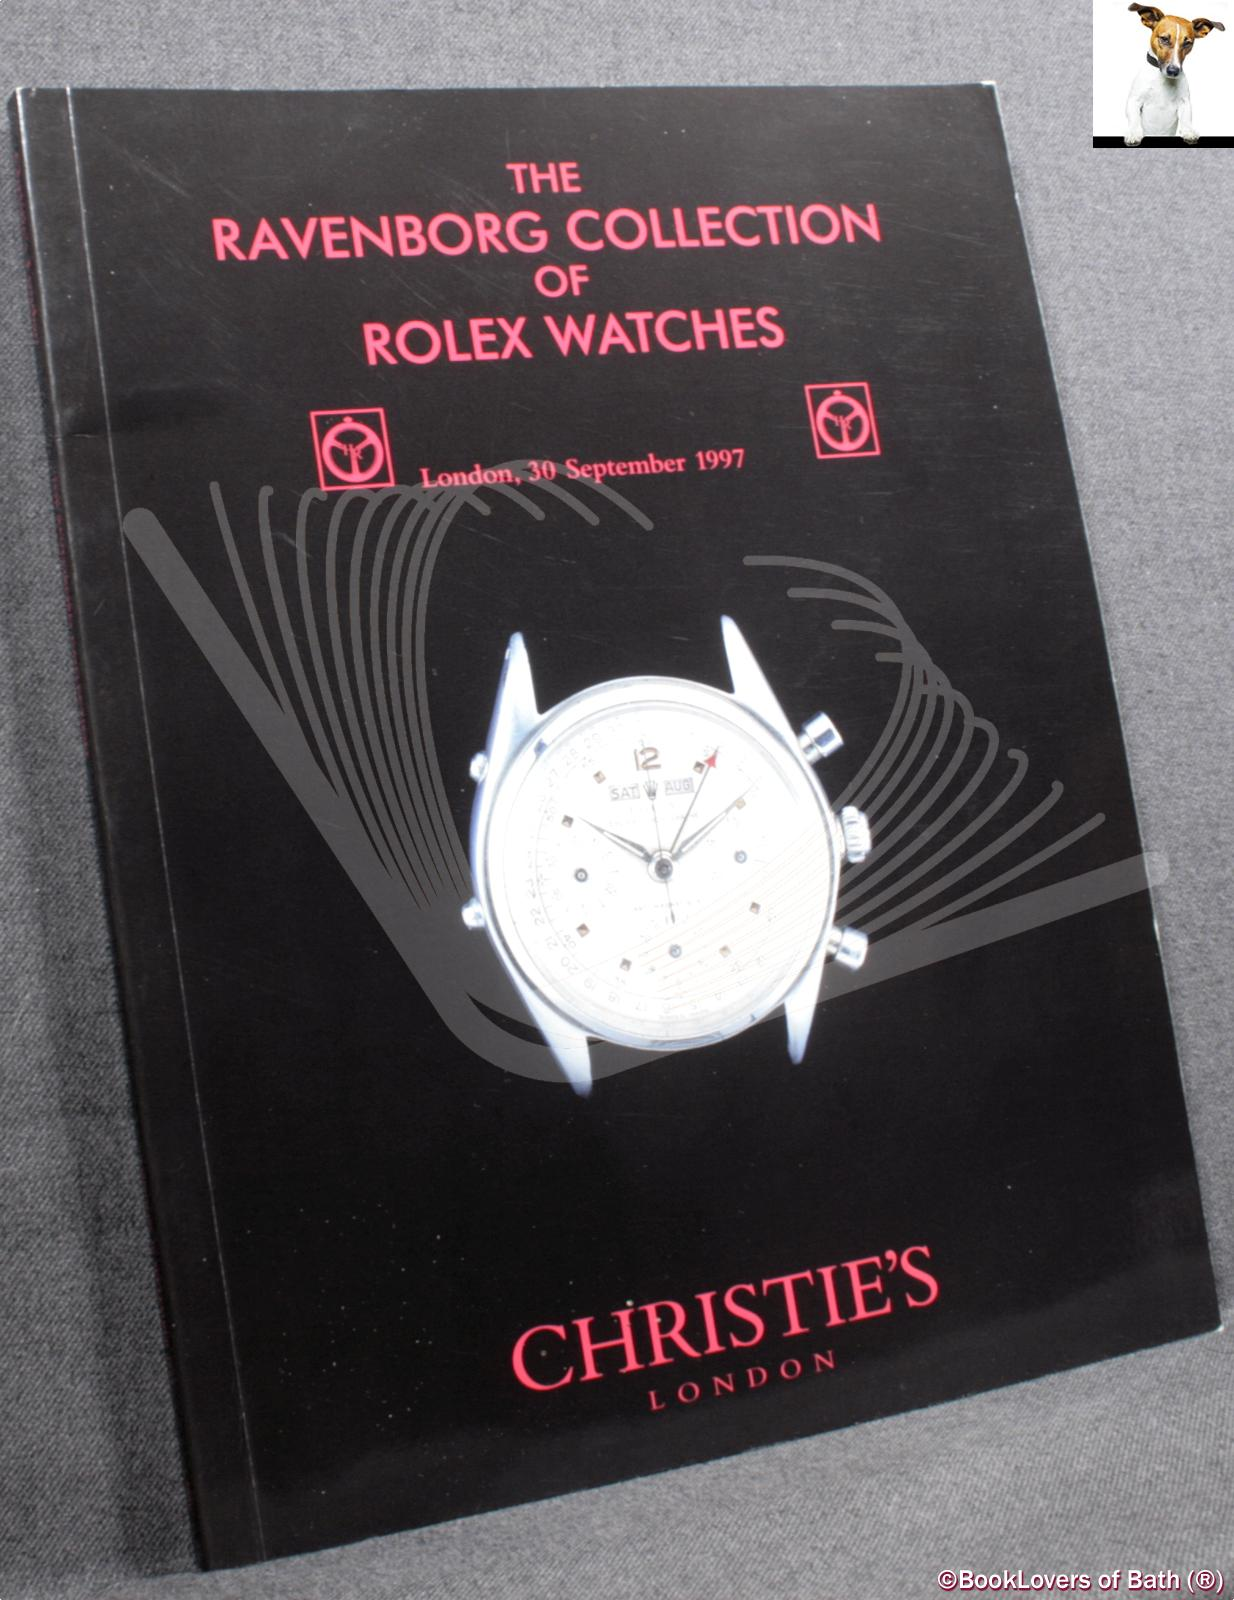 The Ravenborg Collection of Rolex Watches - Anon.